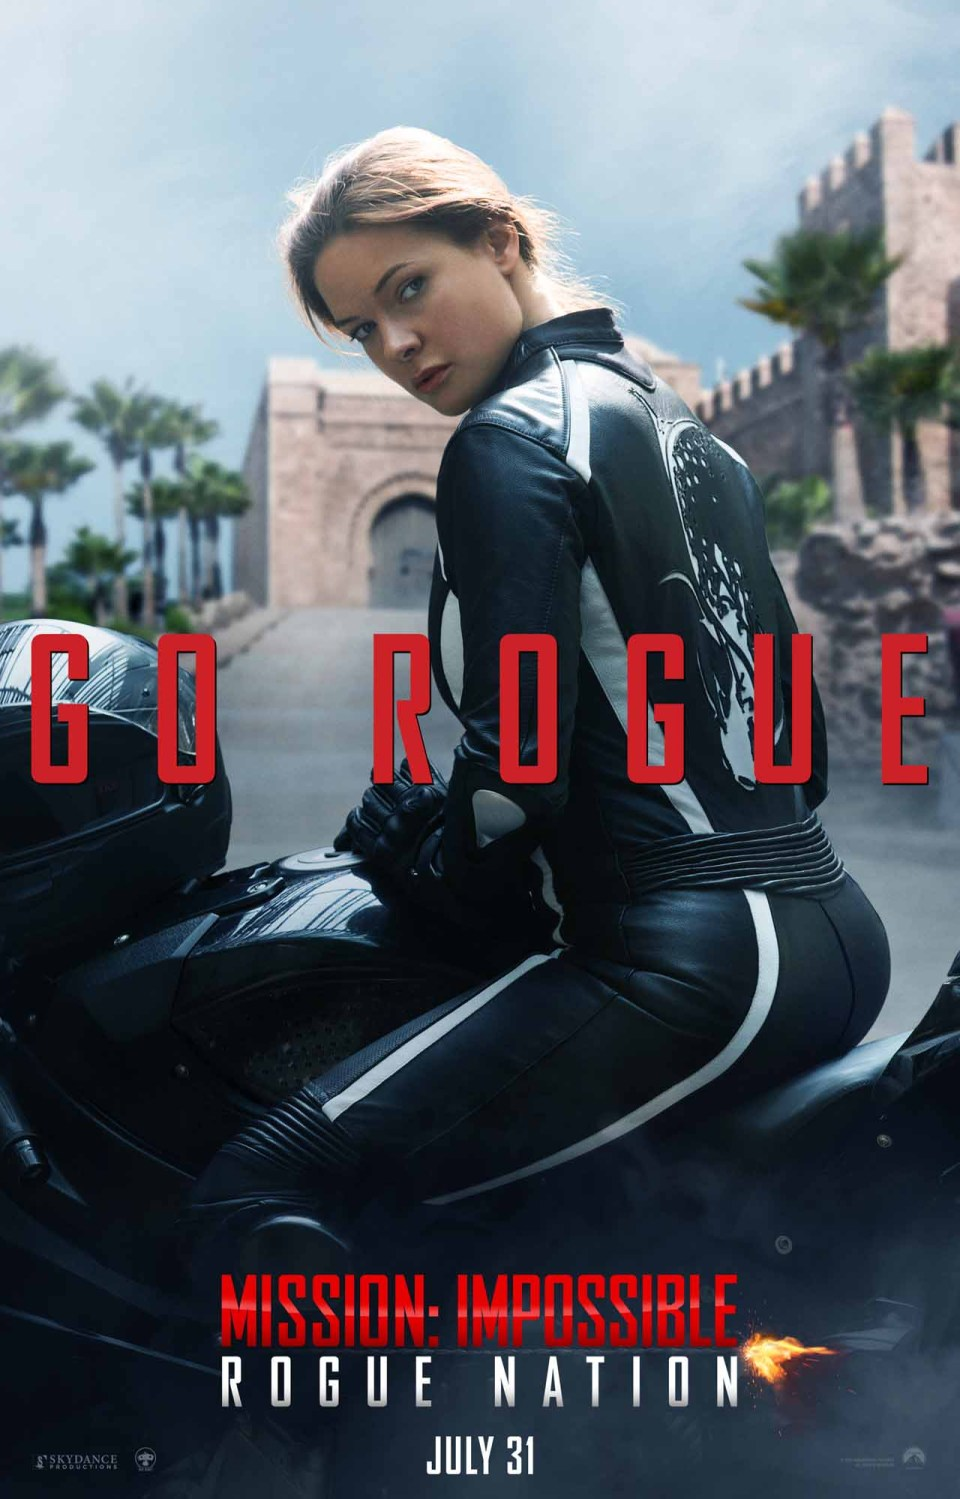 Mission: Impossible Rogue Nation Character Posters